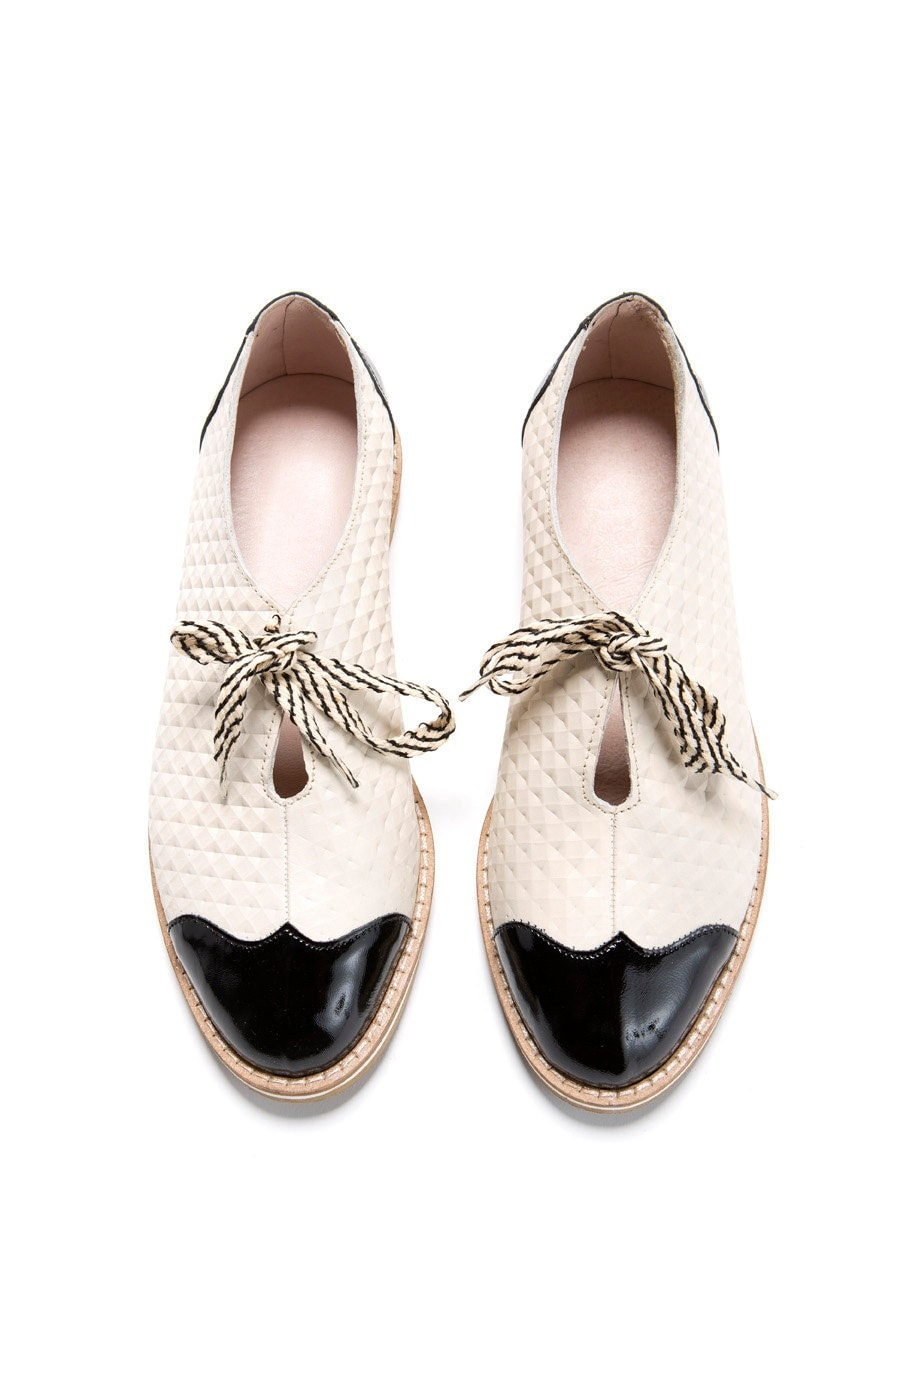 Free shipping BOTH ways on black and white oxford shoes, from our vast selection of styles. Fast delivery, and 24/7/ real-person service with a smile. Click or call